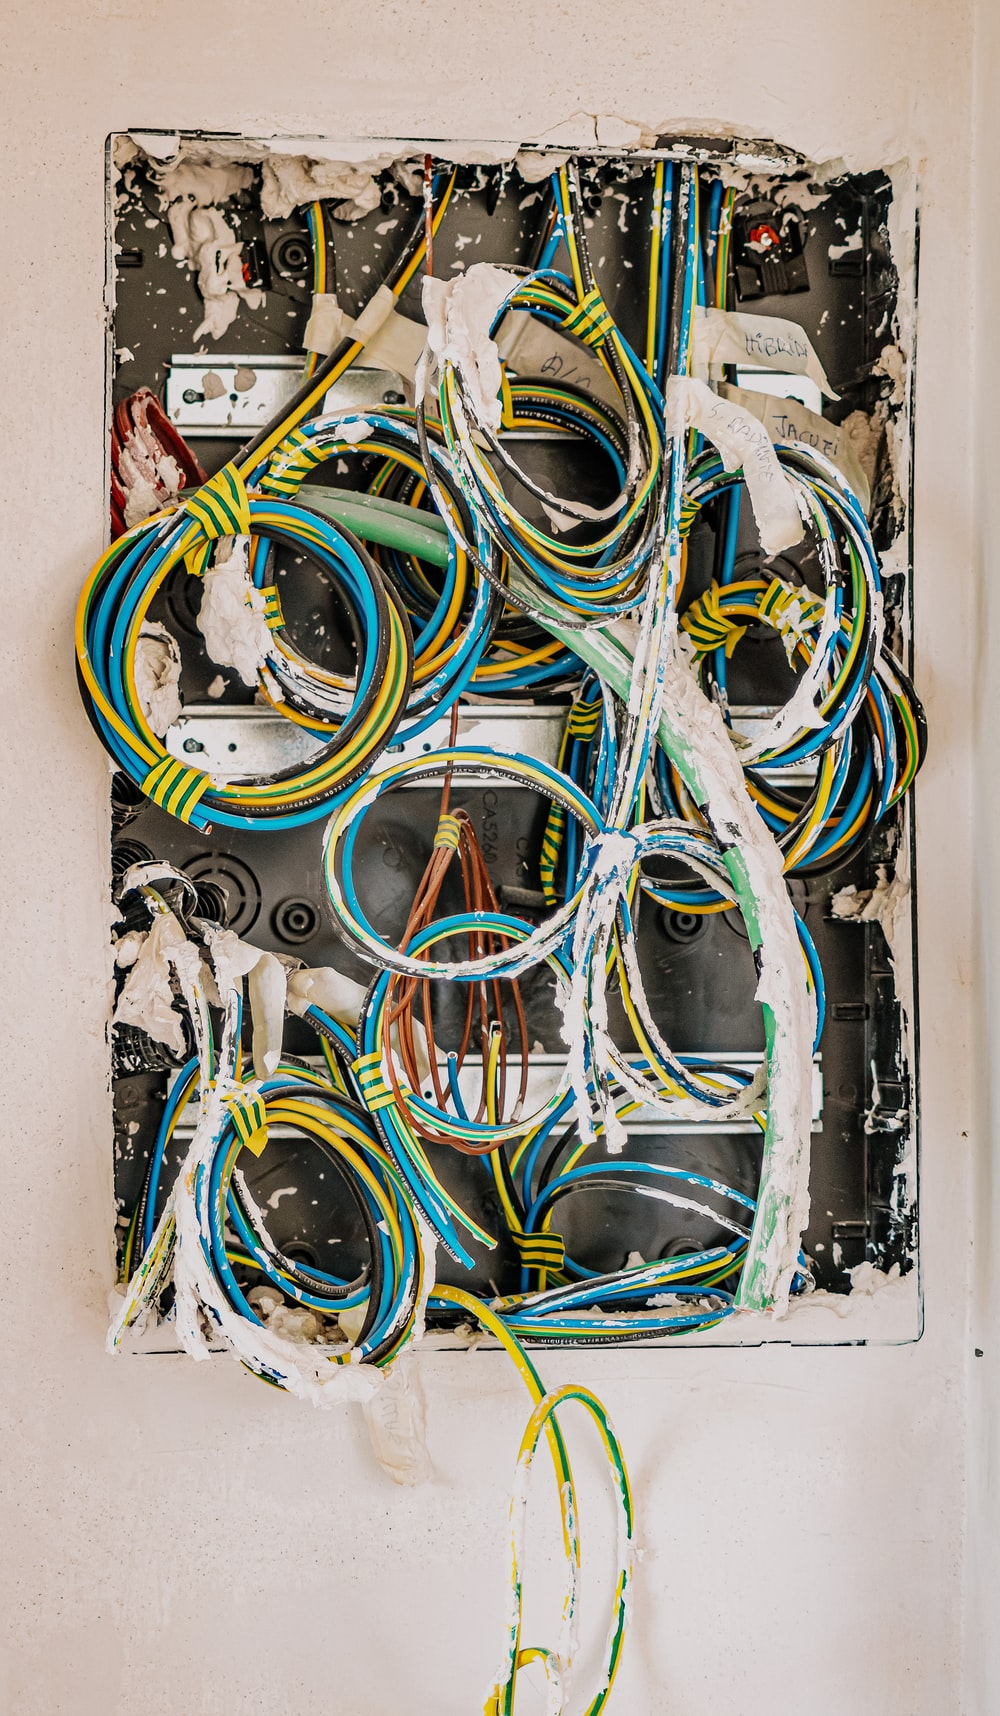 yellow blue and black coated wires